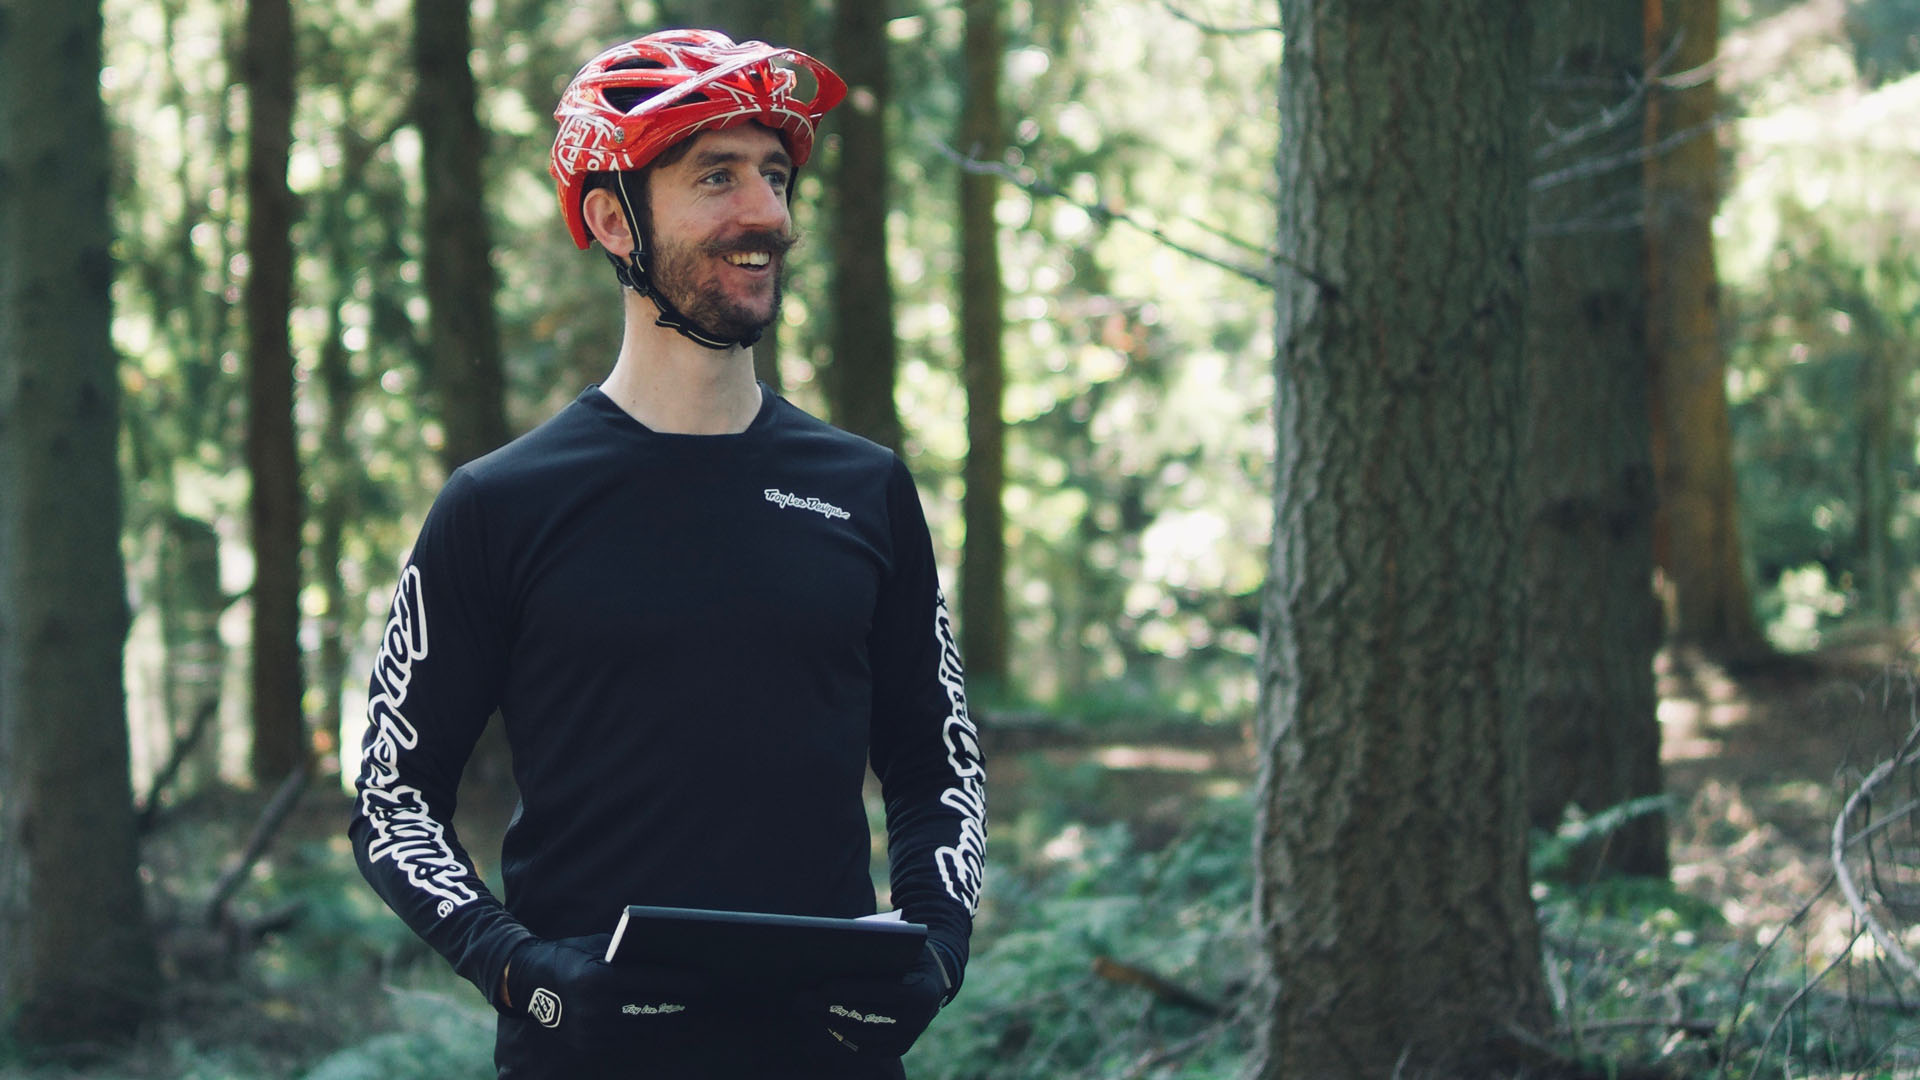 +3 MTB Suspension Tech Will Soffe is always smiling on our coaching events